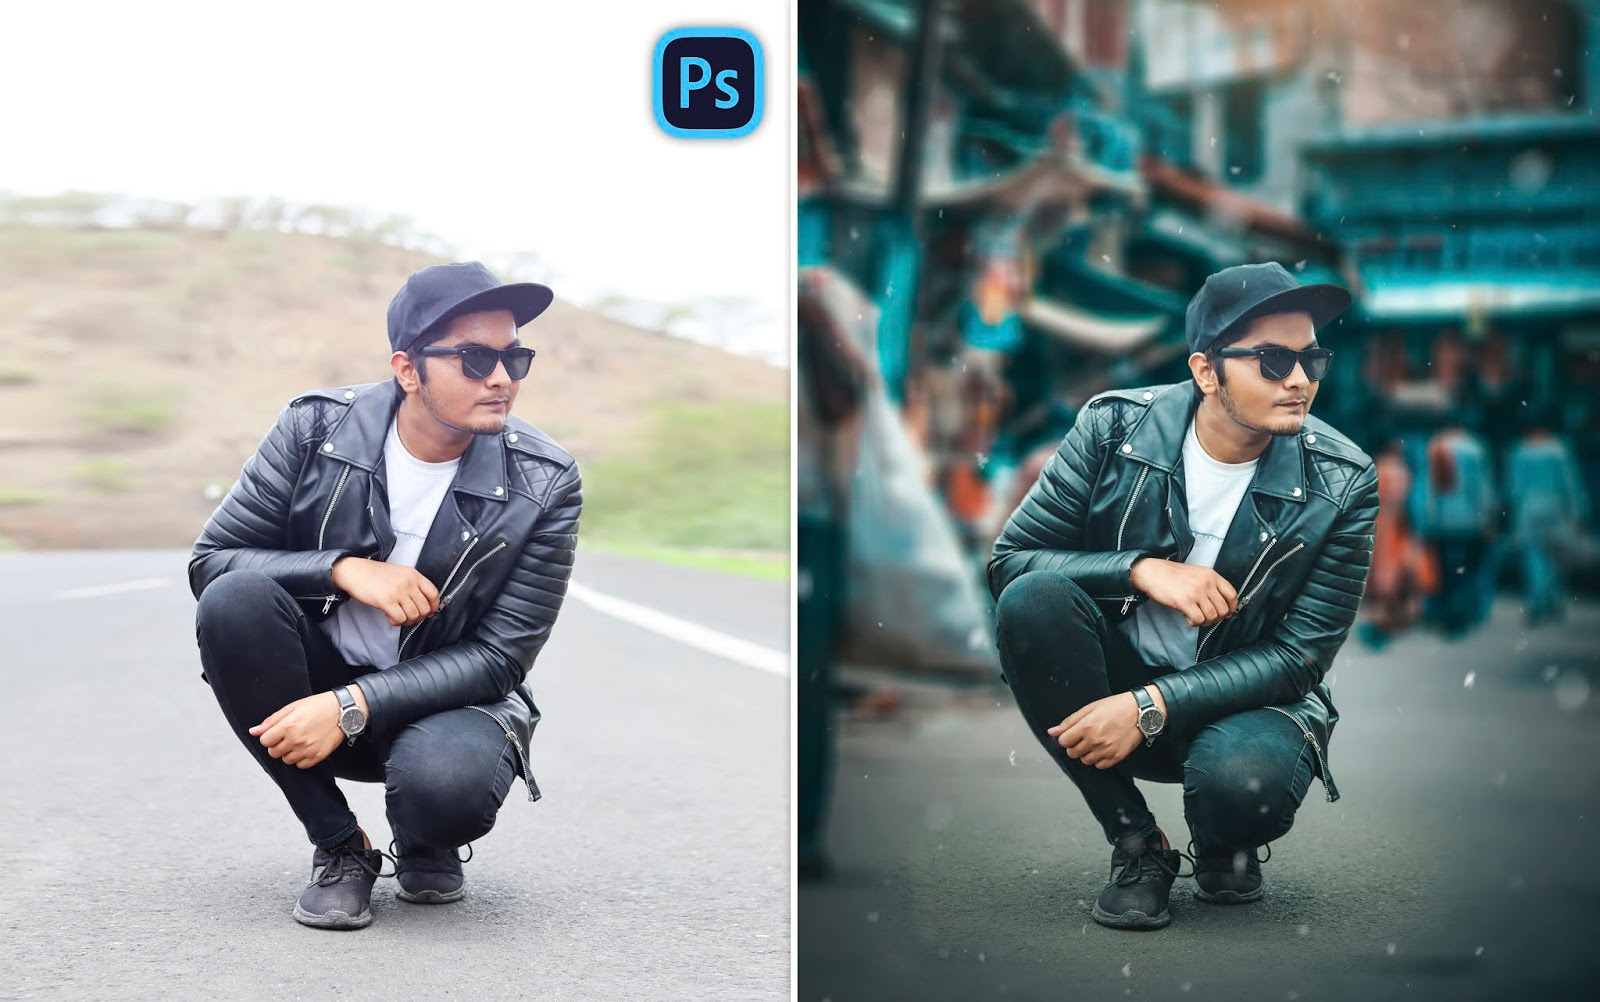 Instagram Cineamtic Photo Manipulation in Photoshop with Cinematic Color Grading | How to Make Cinematic Photo in Photoshop